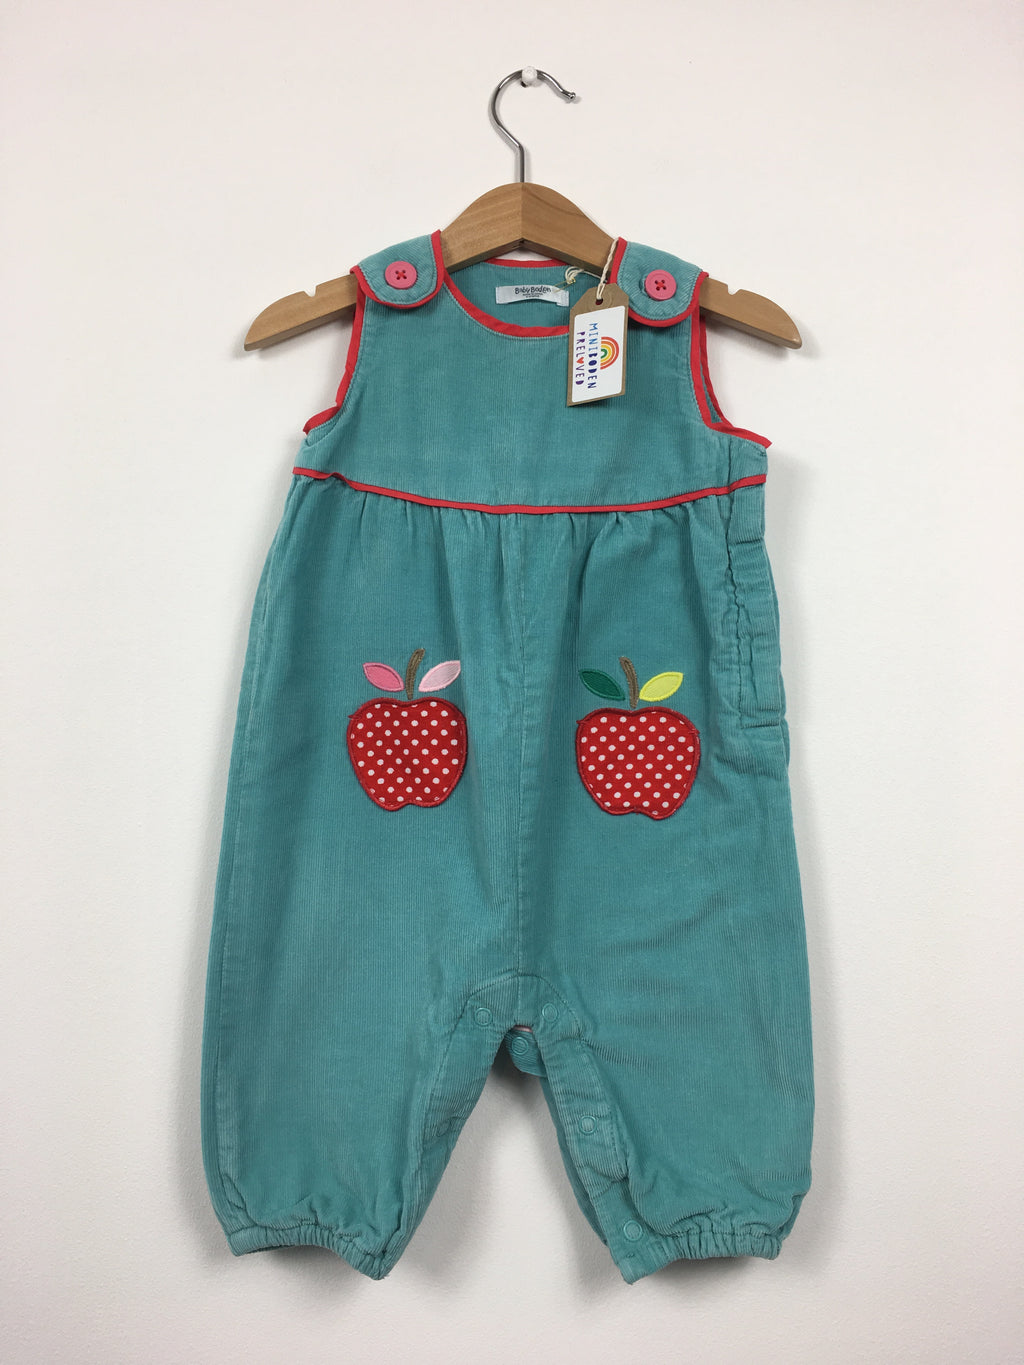 Adorable Turquoise Cord Dungarees With Apple Pockets